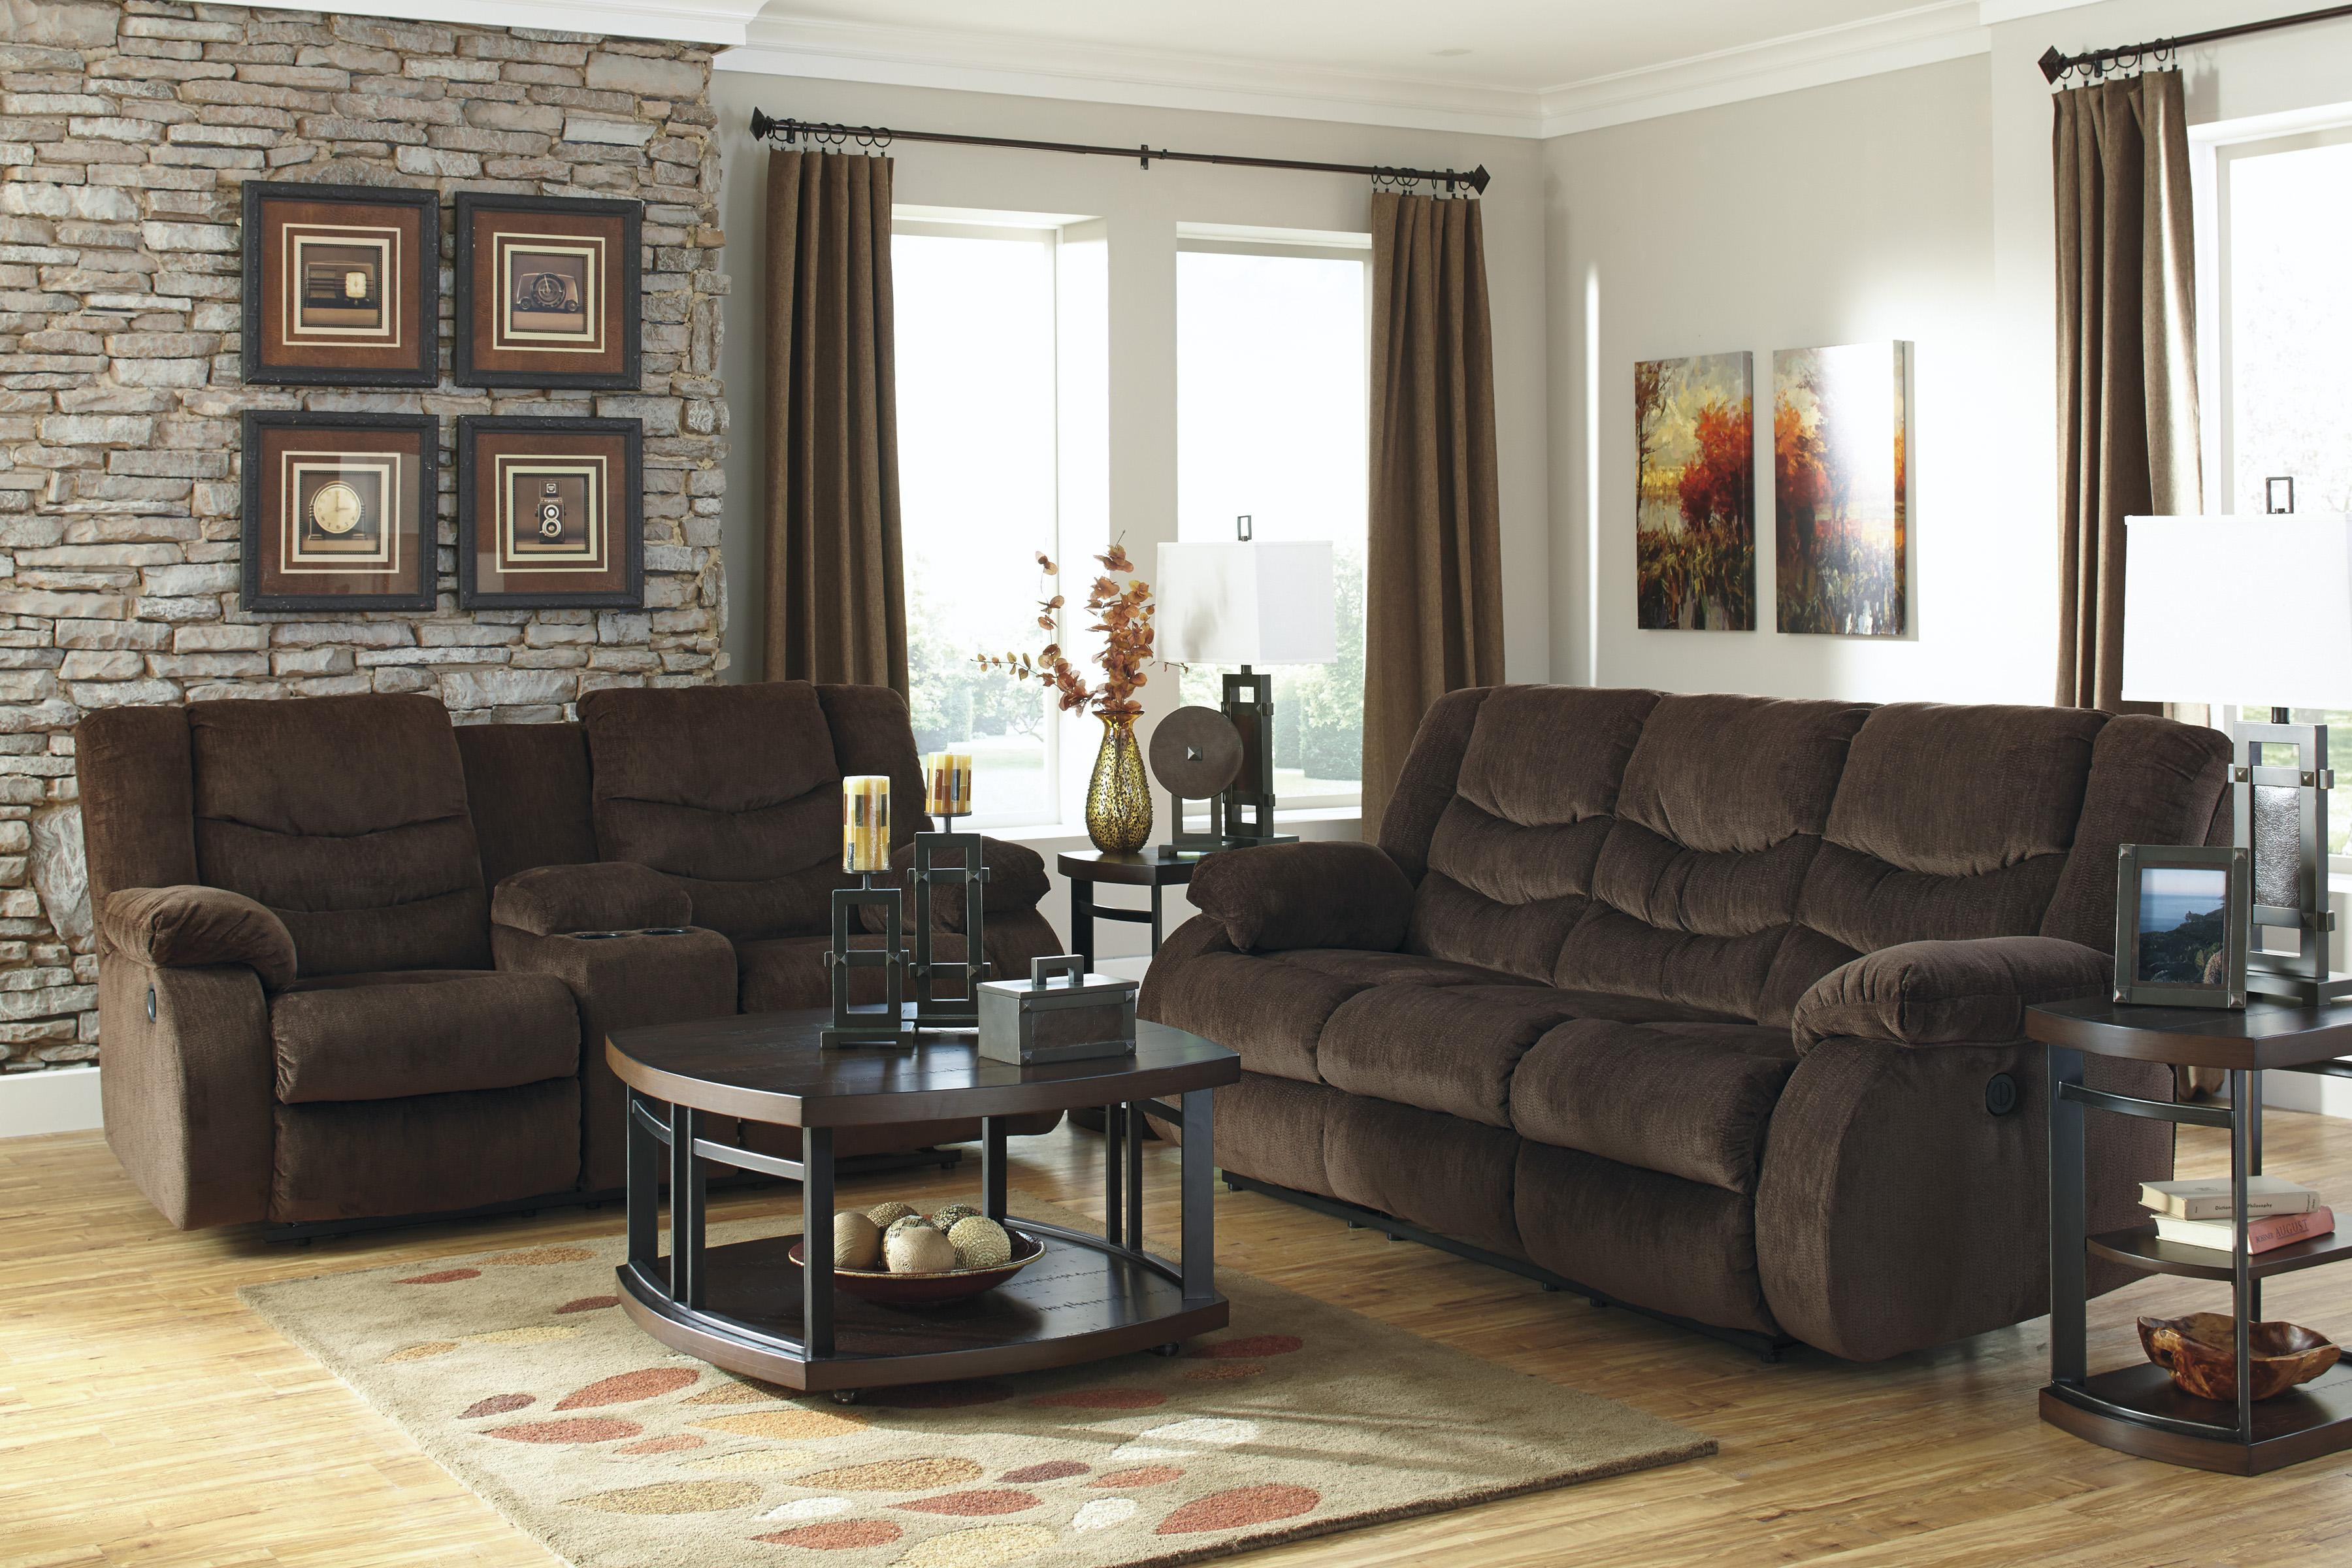 Signature Design by Ashley Garek - Cocoa Reclining Living Room Group - Item Number: 92003 Living Room Group 3